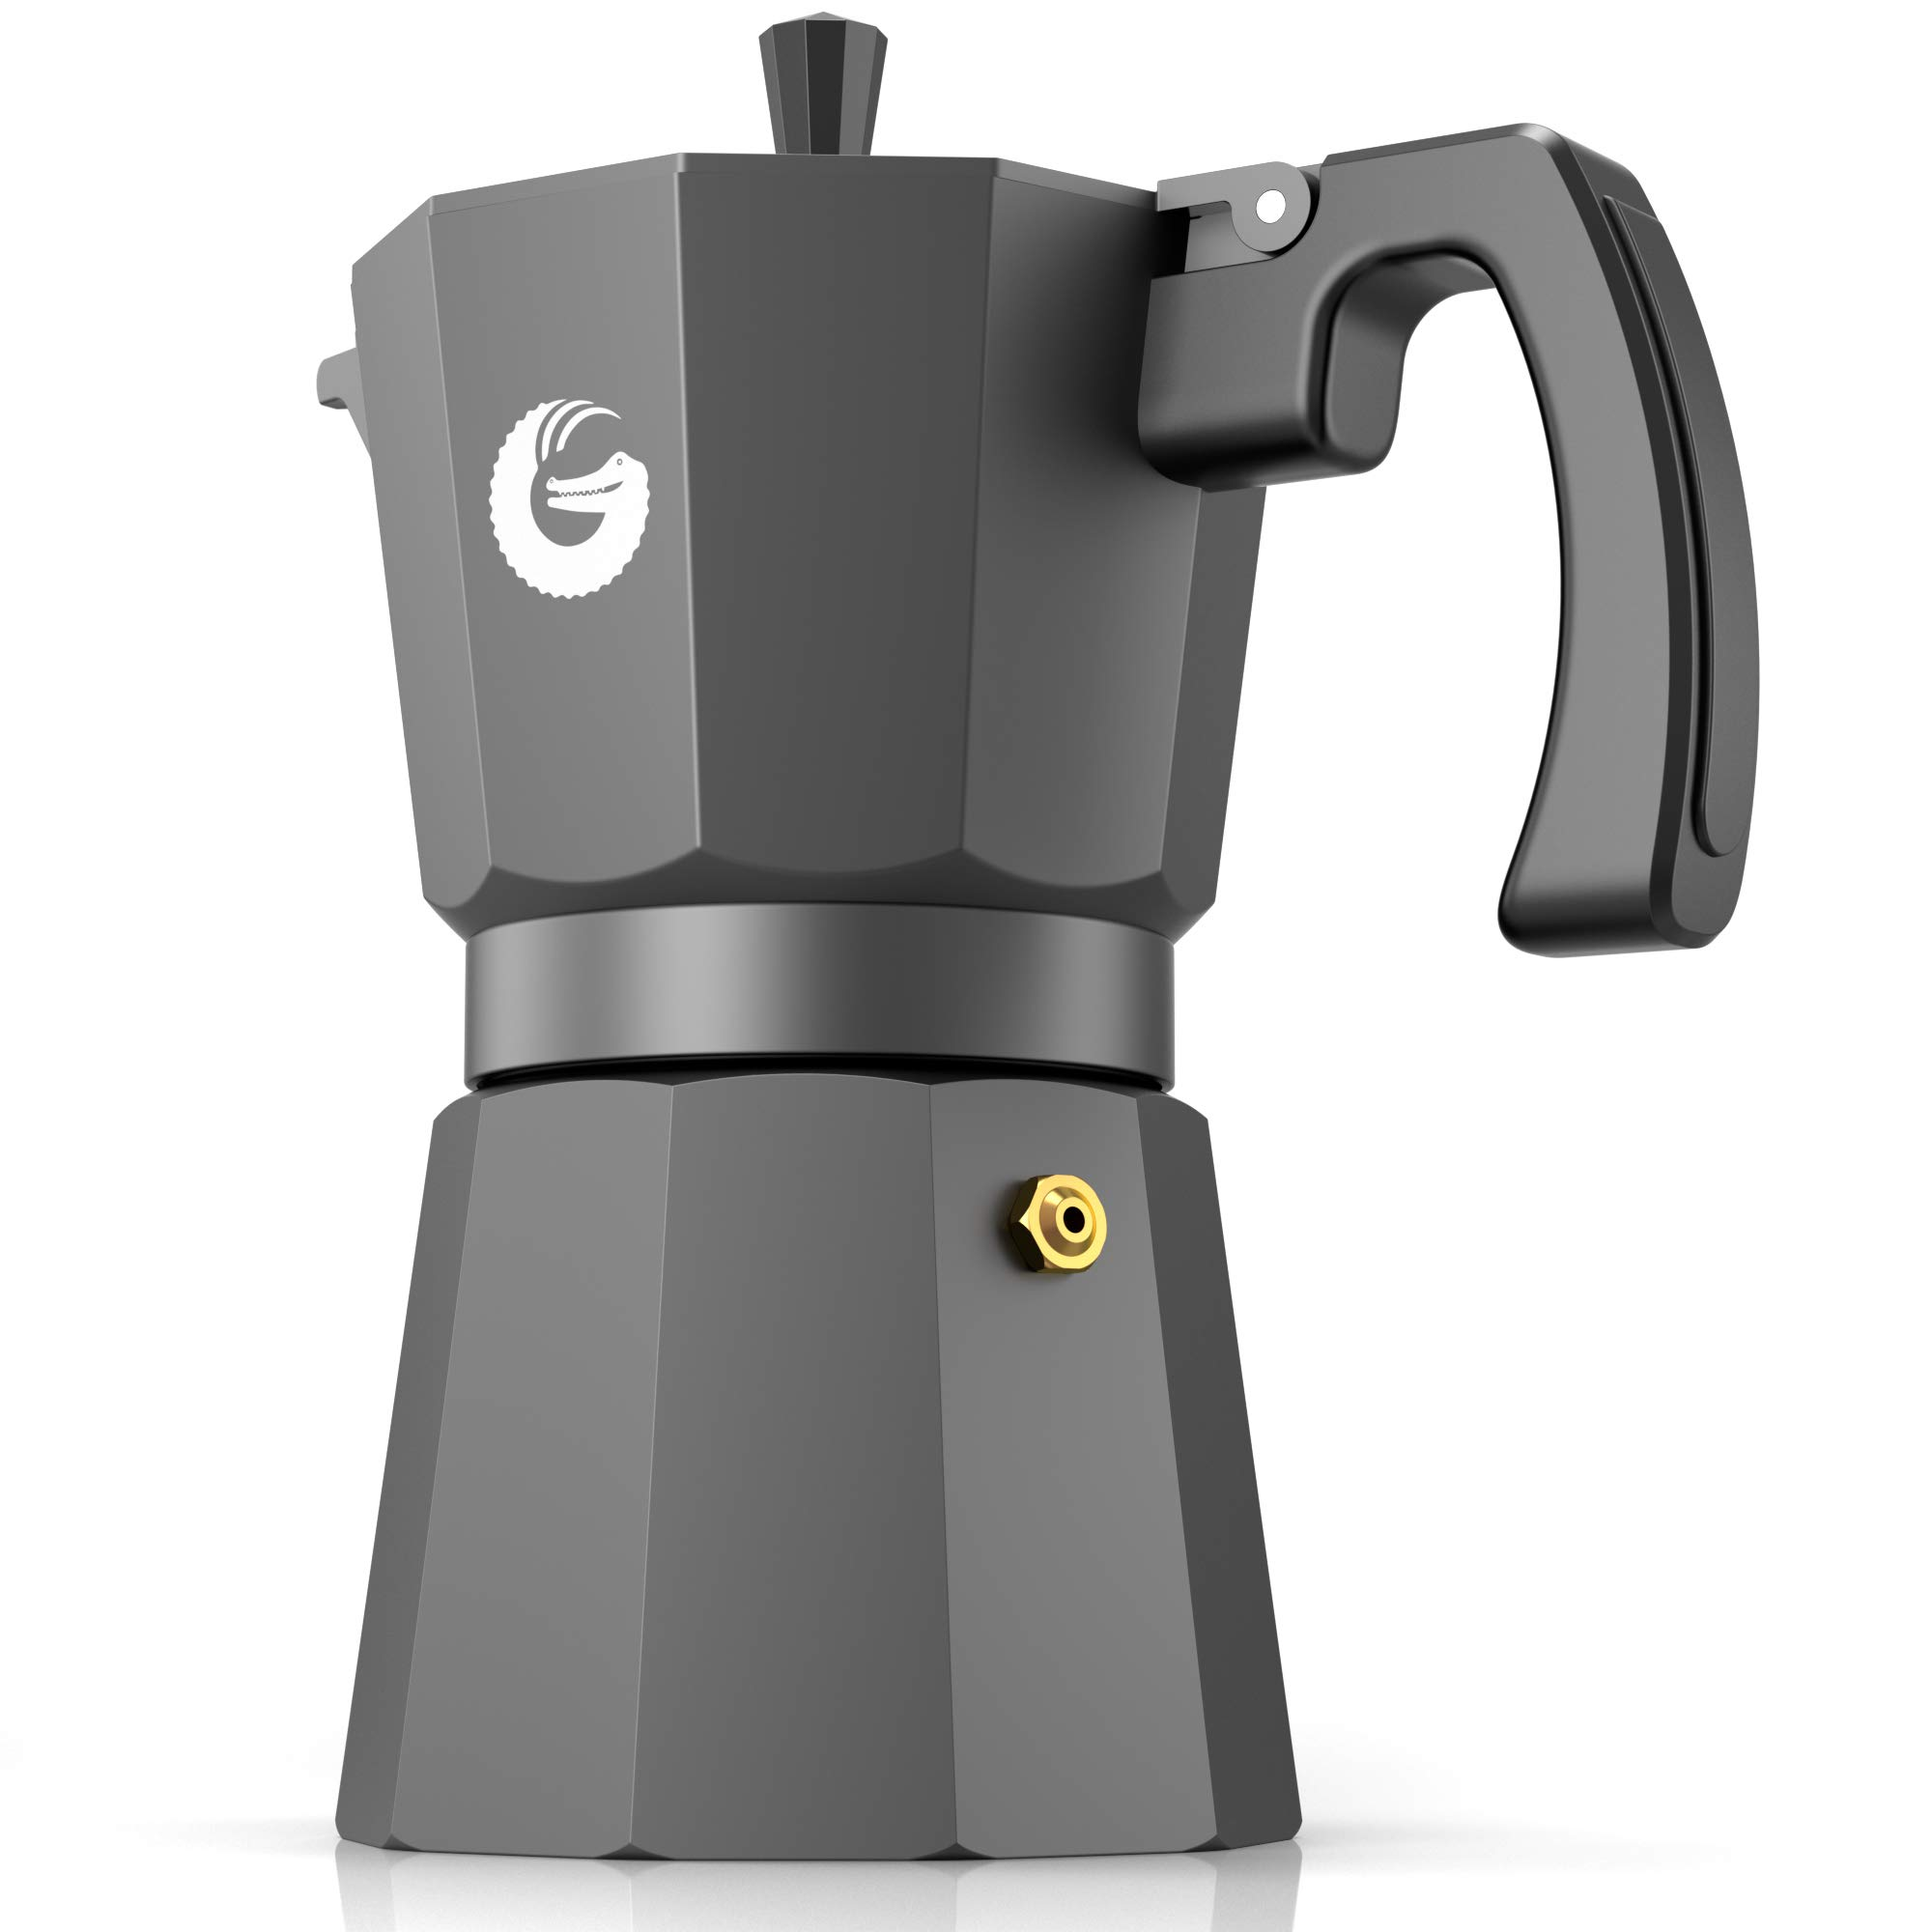 Coffee Gator Espresso Moka Pot - Stovetop Brewer Plus 2 Thermal Cups - 12 Ounce by Coffee Gator (Image #5)